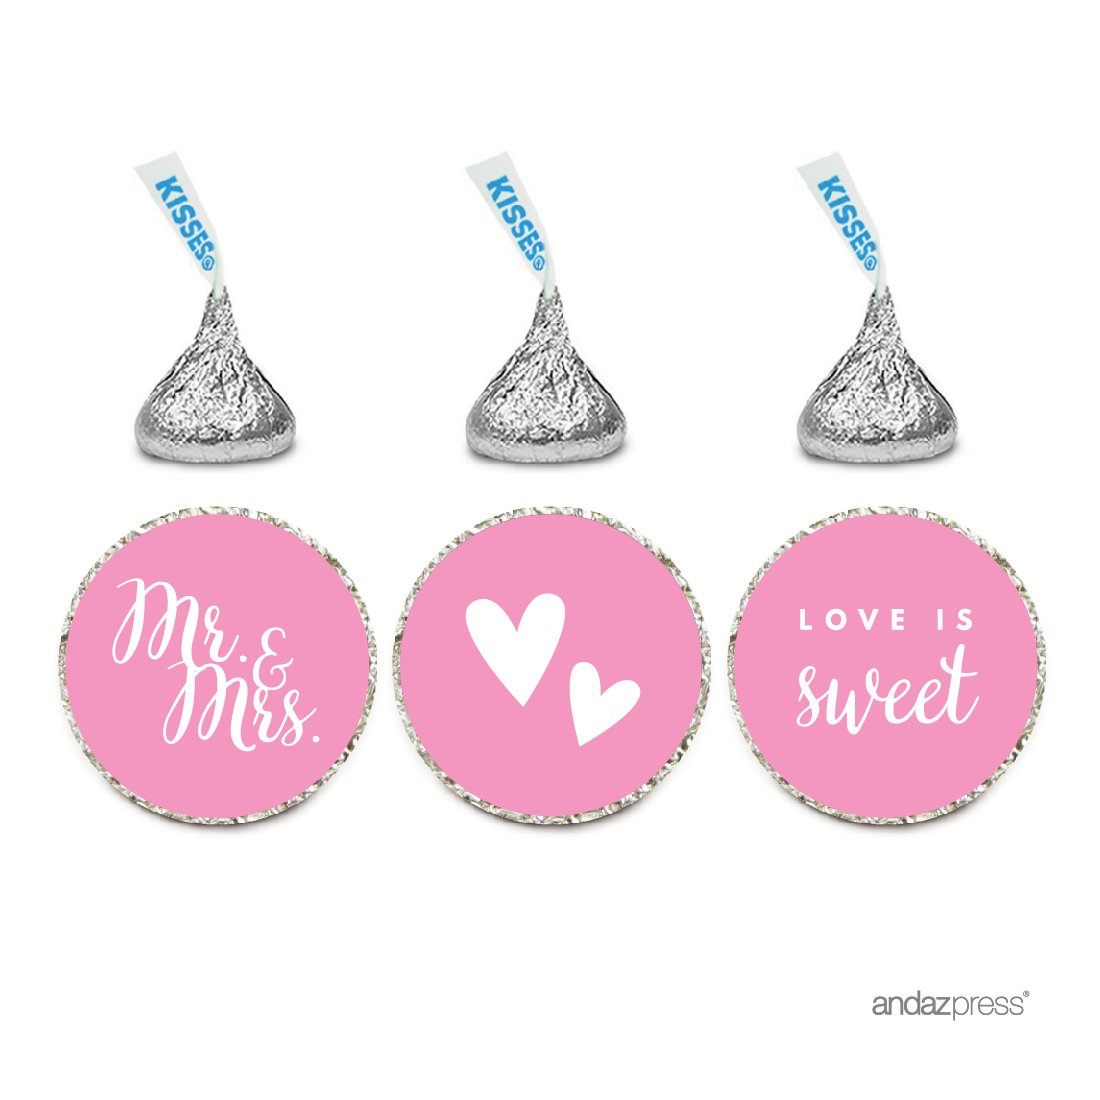 Andaz Press Chocolate Drop Labels Trio, Fits Hershey's Kisses, Wedding Mr. & Mrs, Pink, 216-Pack, for Bridal Shower, Engagement Party Favors, Gifts, Stationery, Envelopes, Decor, Decorations